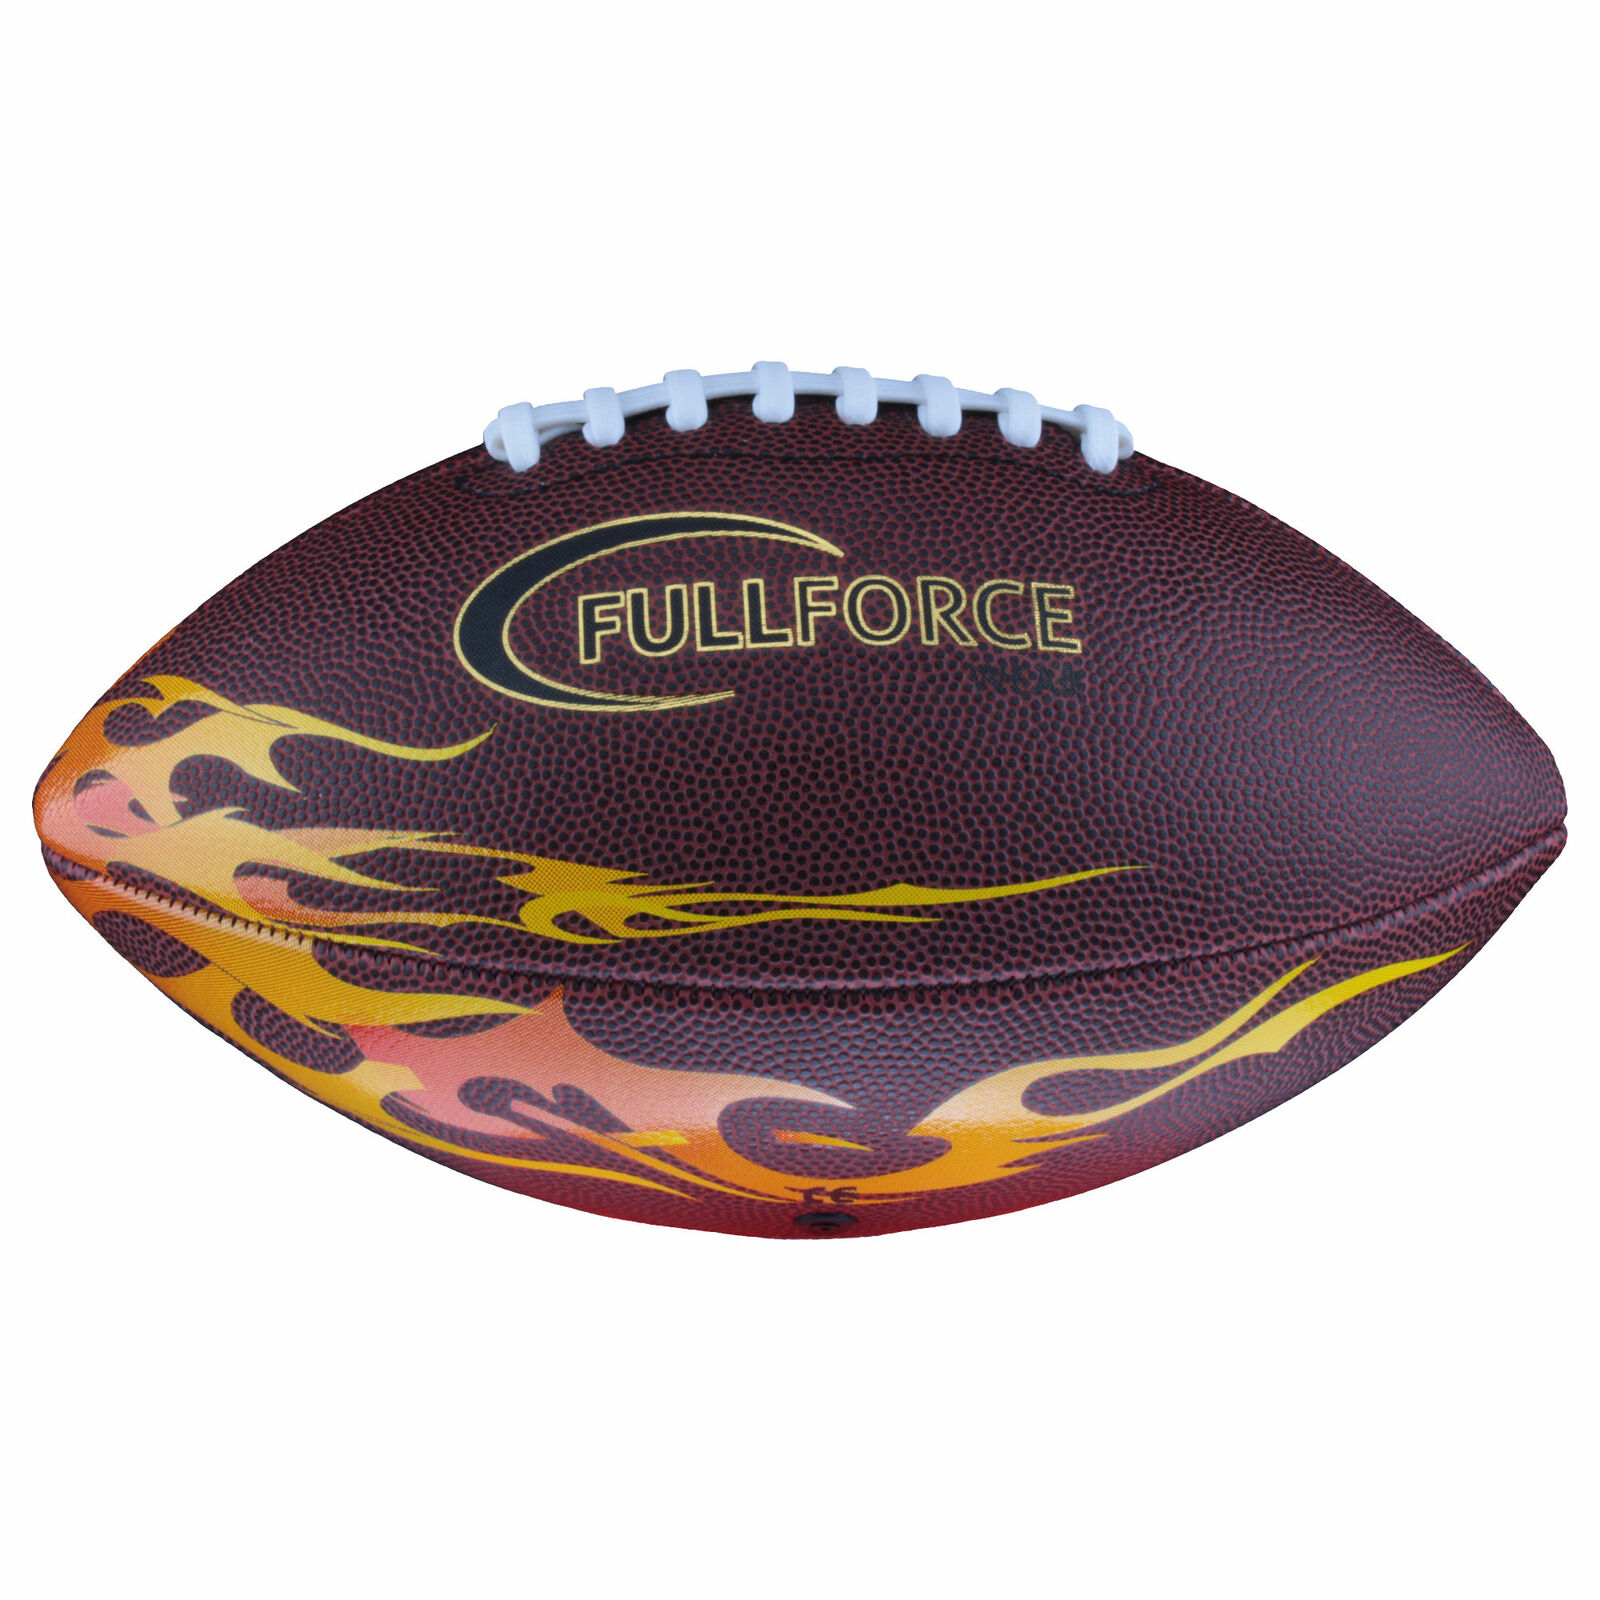 Full Force American Football Junior Freizeit- und Trainingsball FLAMME, Gr. 7